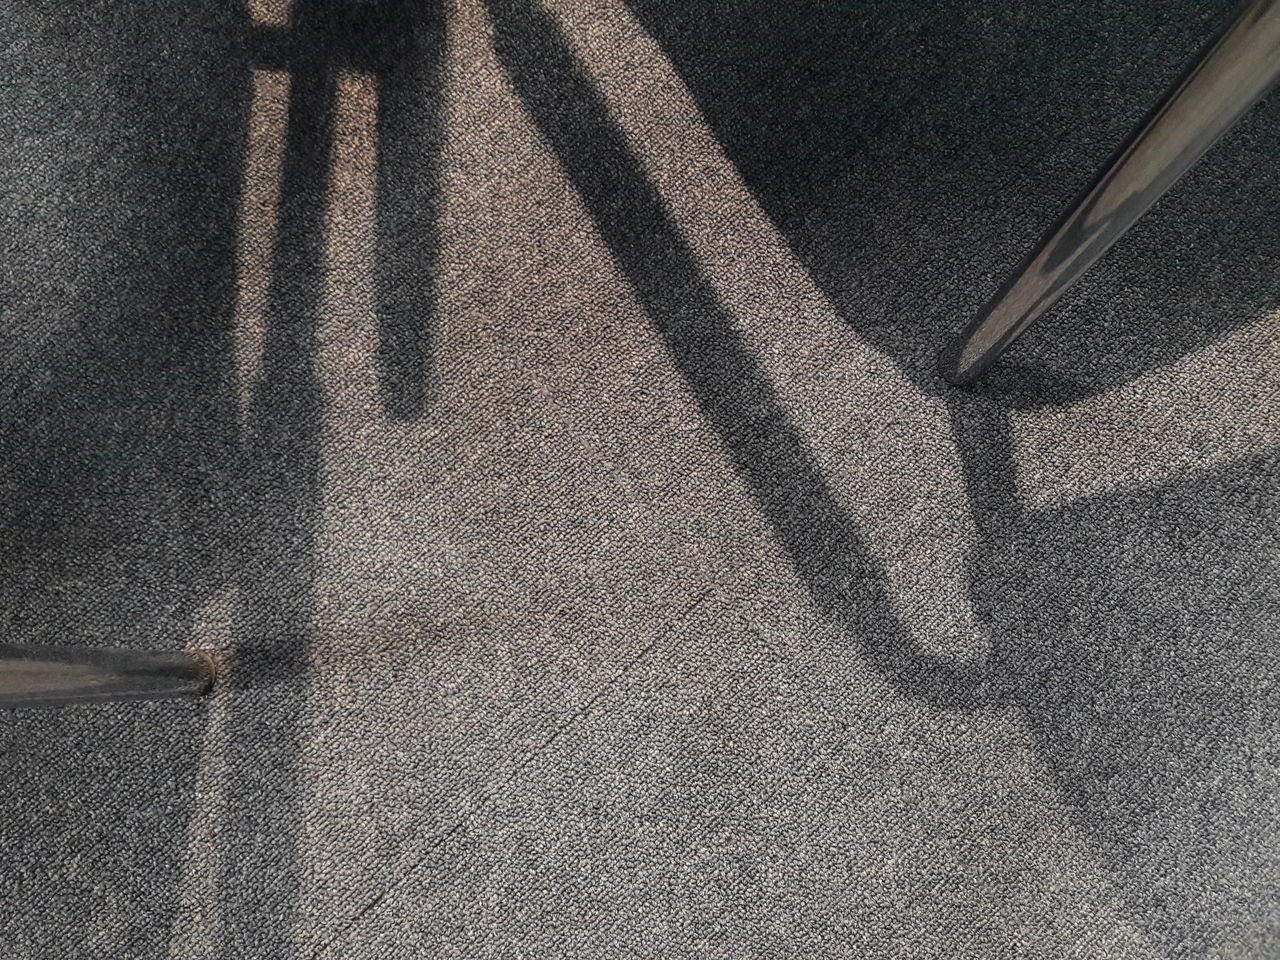 Conference room floor Velvet Grey Gray Shadow Backgrounds Textured  Indoors  No People Conference Conference Room Chair Pattern Wallpaper Full Frame Close-up Fabric